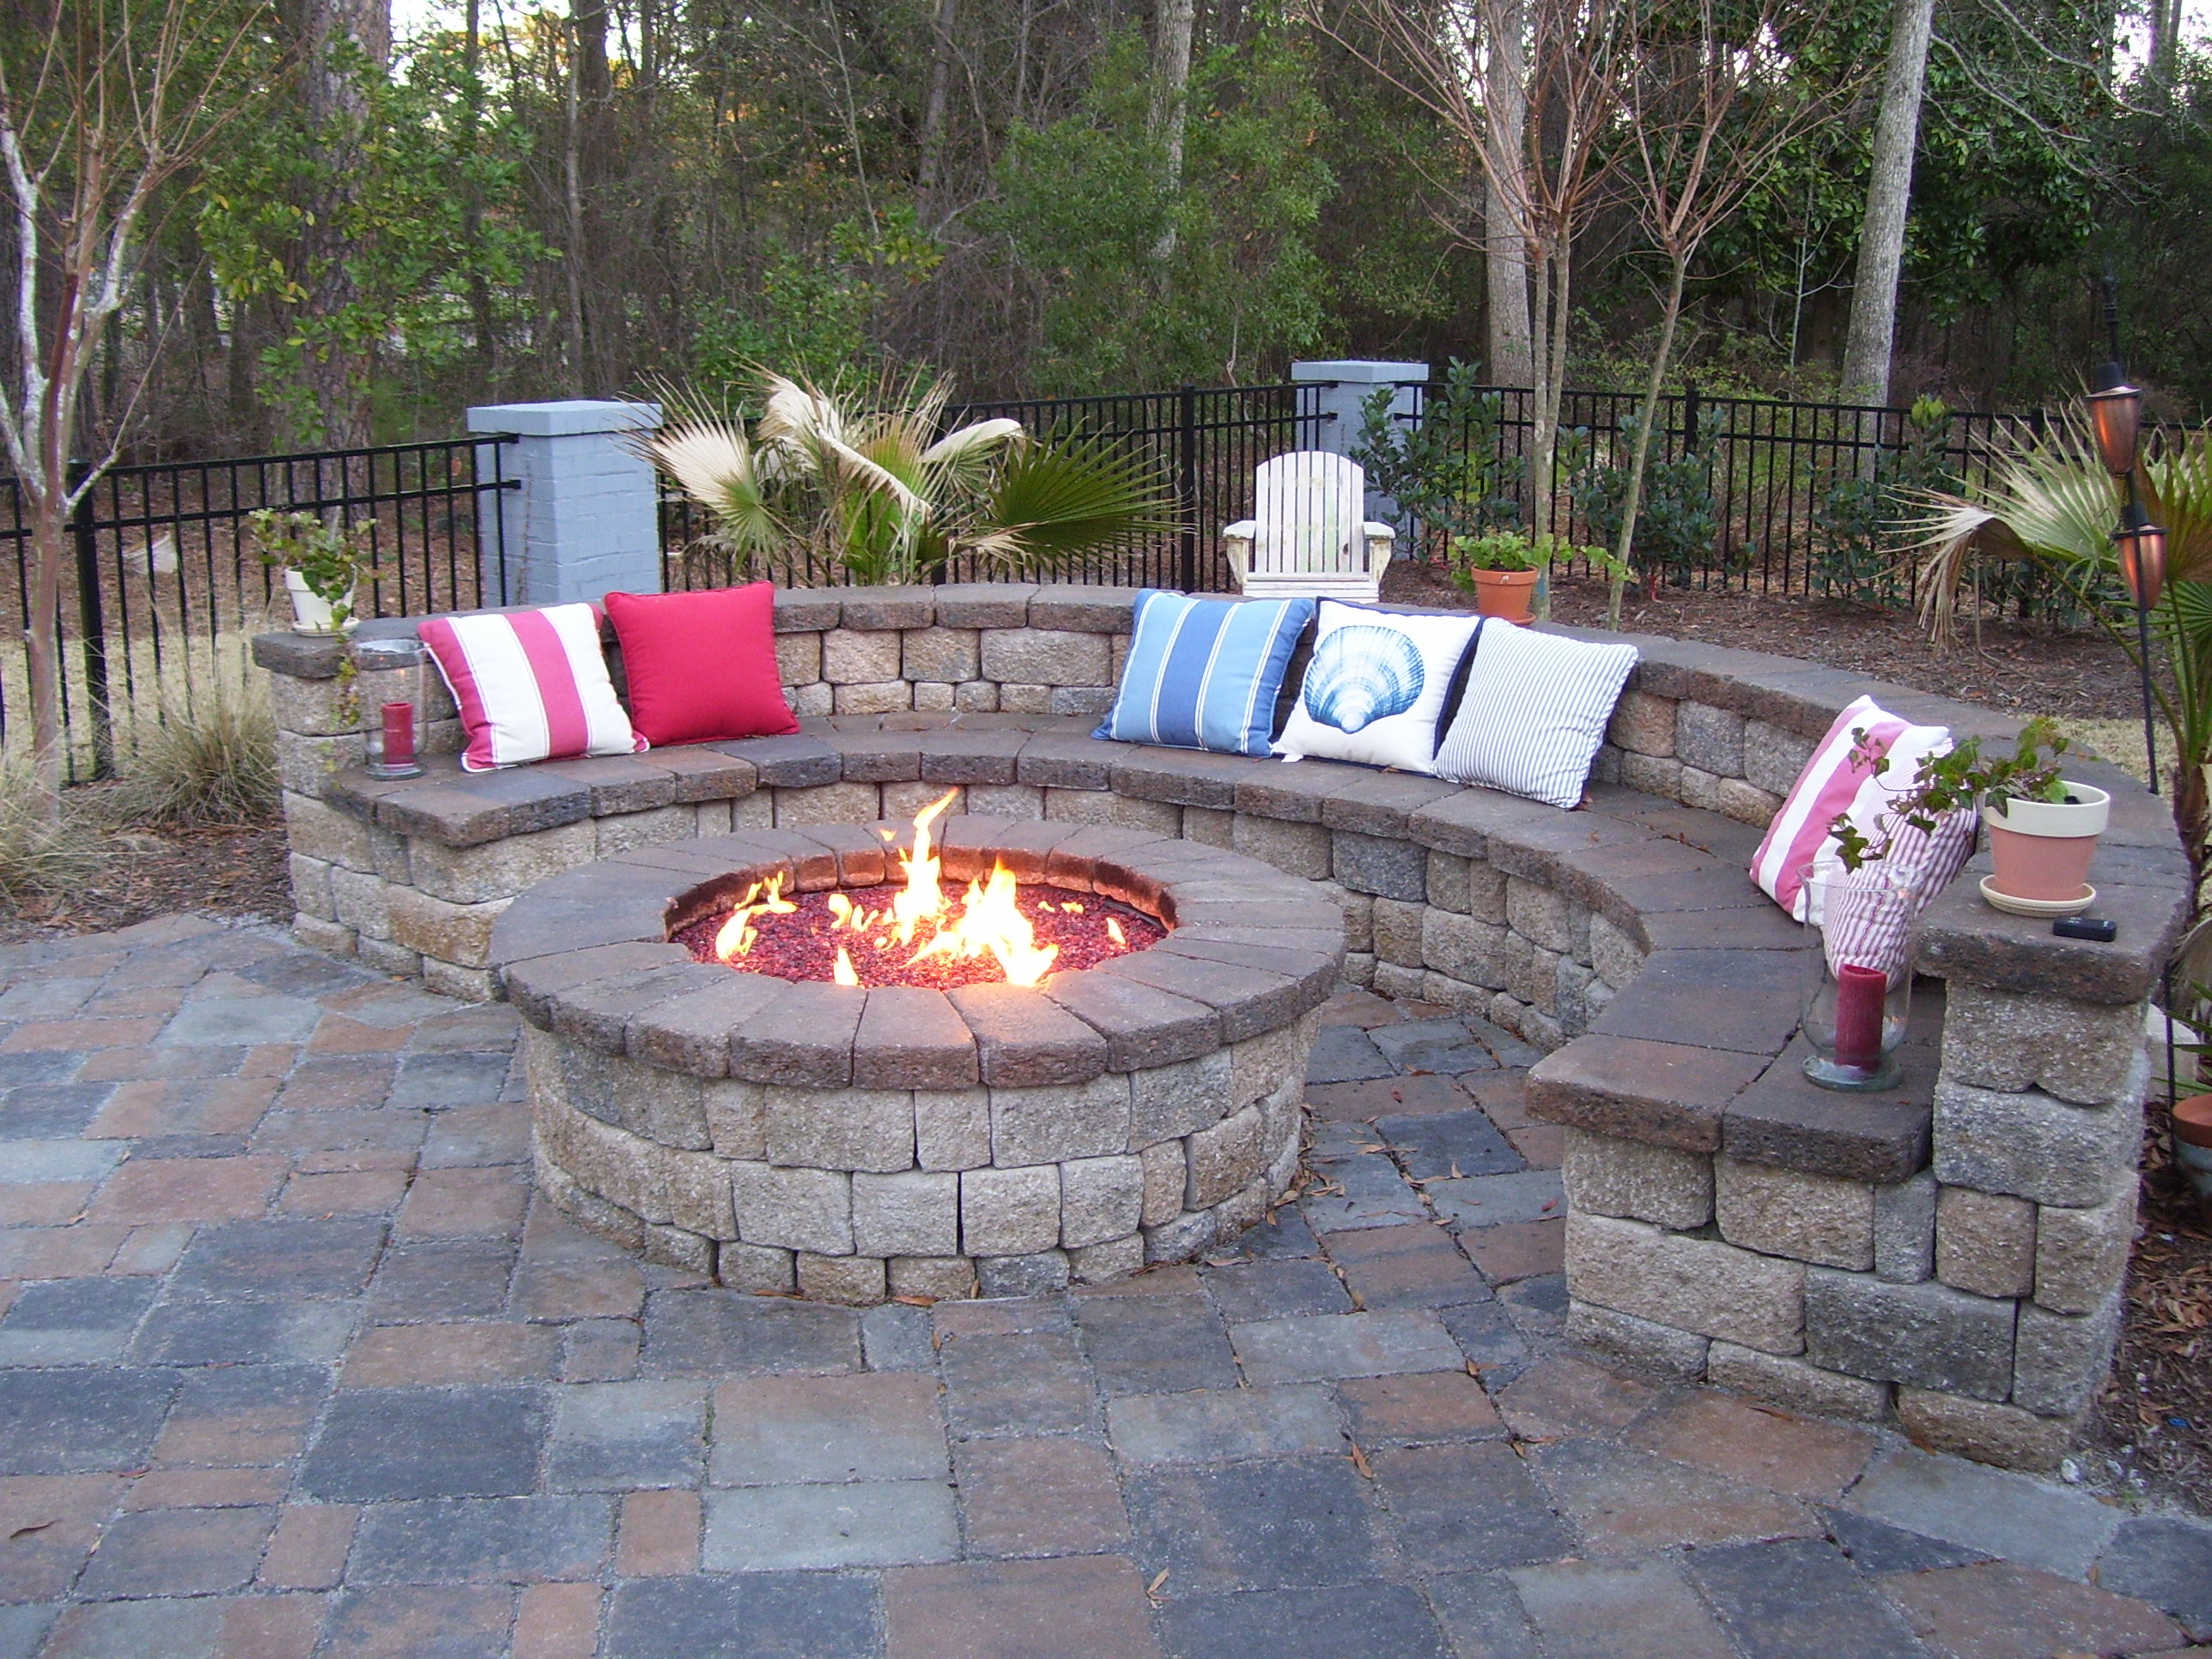 Coastroad Hearth Patio 4733 Main St Shallotte Nc 28470 Yp Com